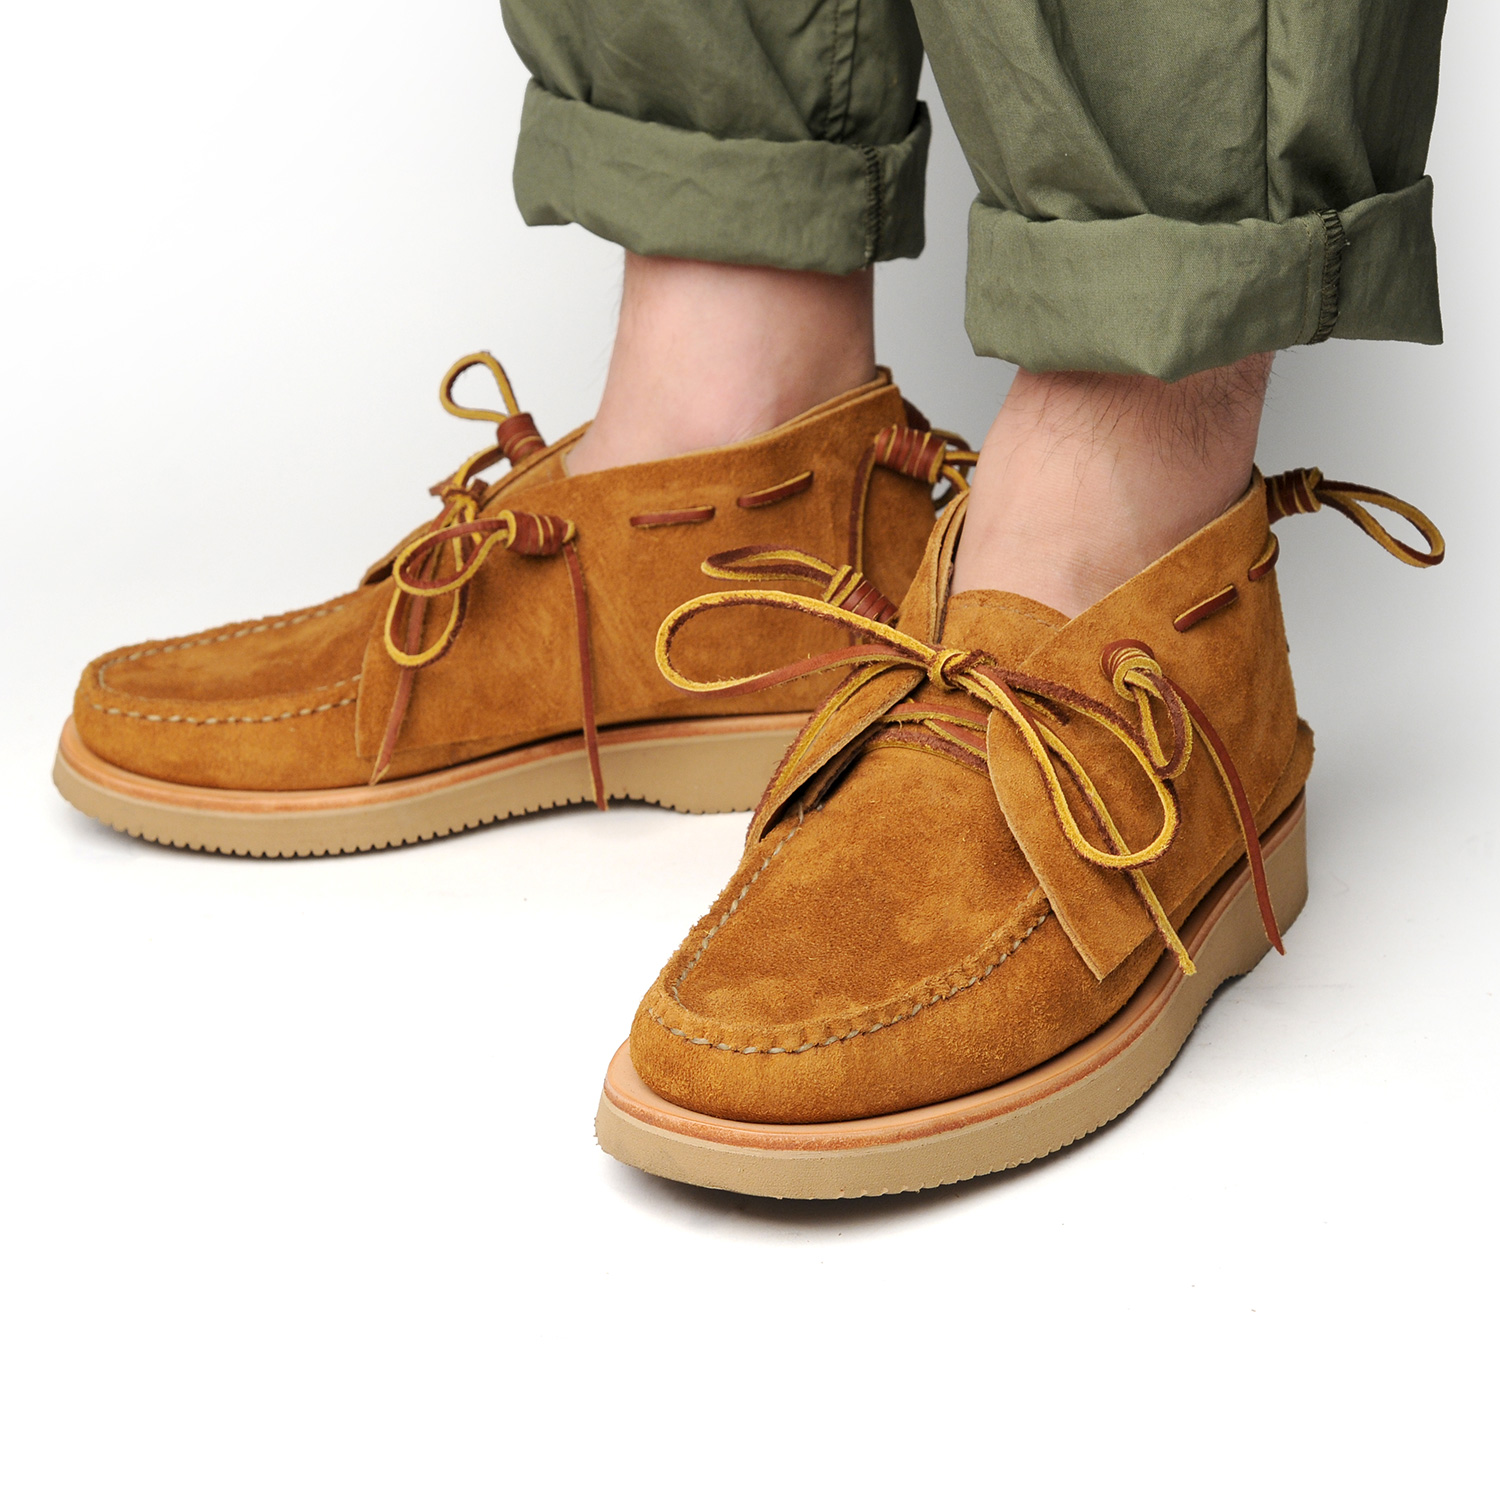 17623M-8-PIG-TAIL--TAILS-CHUKKA-W-2060-FO-G-BROWN-I.jpg